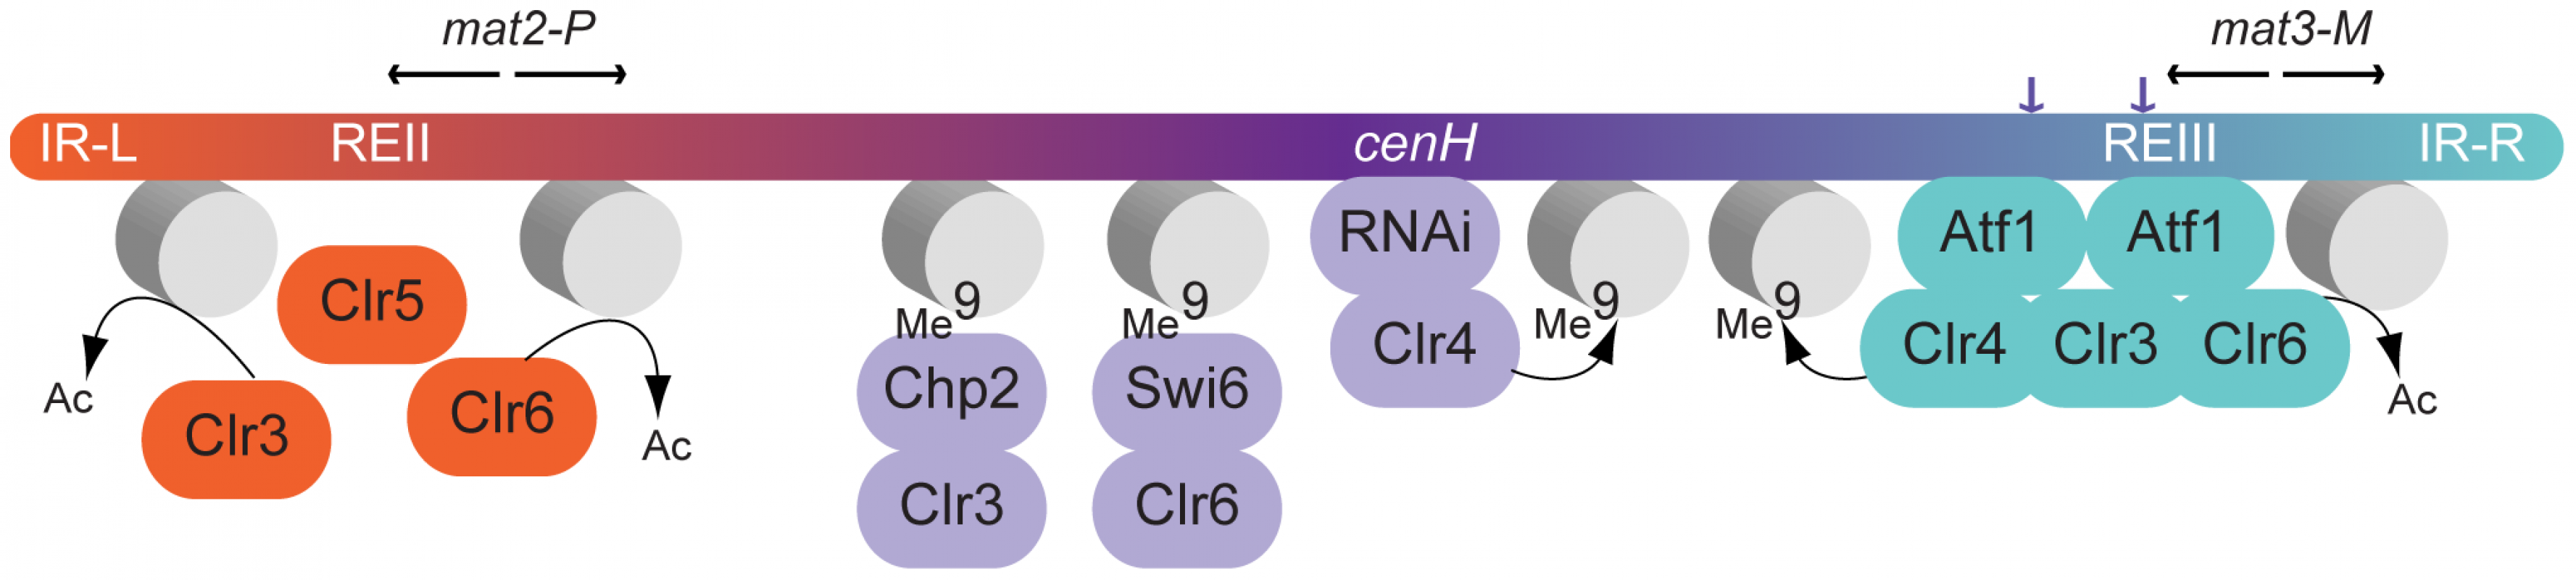 Model for gene silencing in the mating-type region.